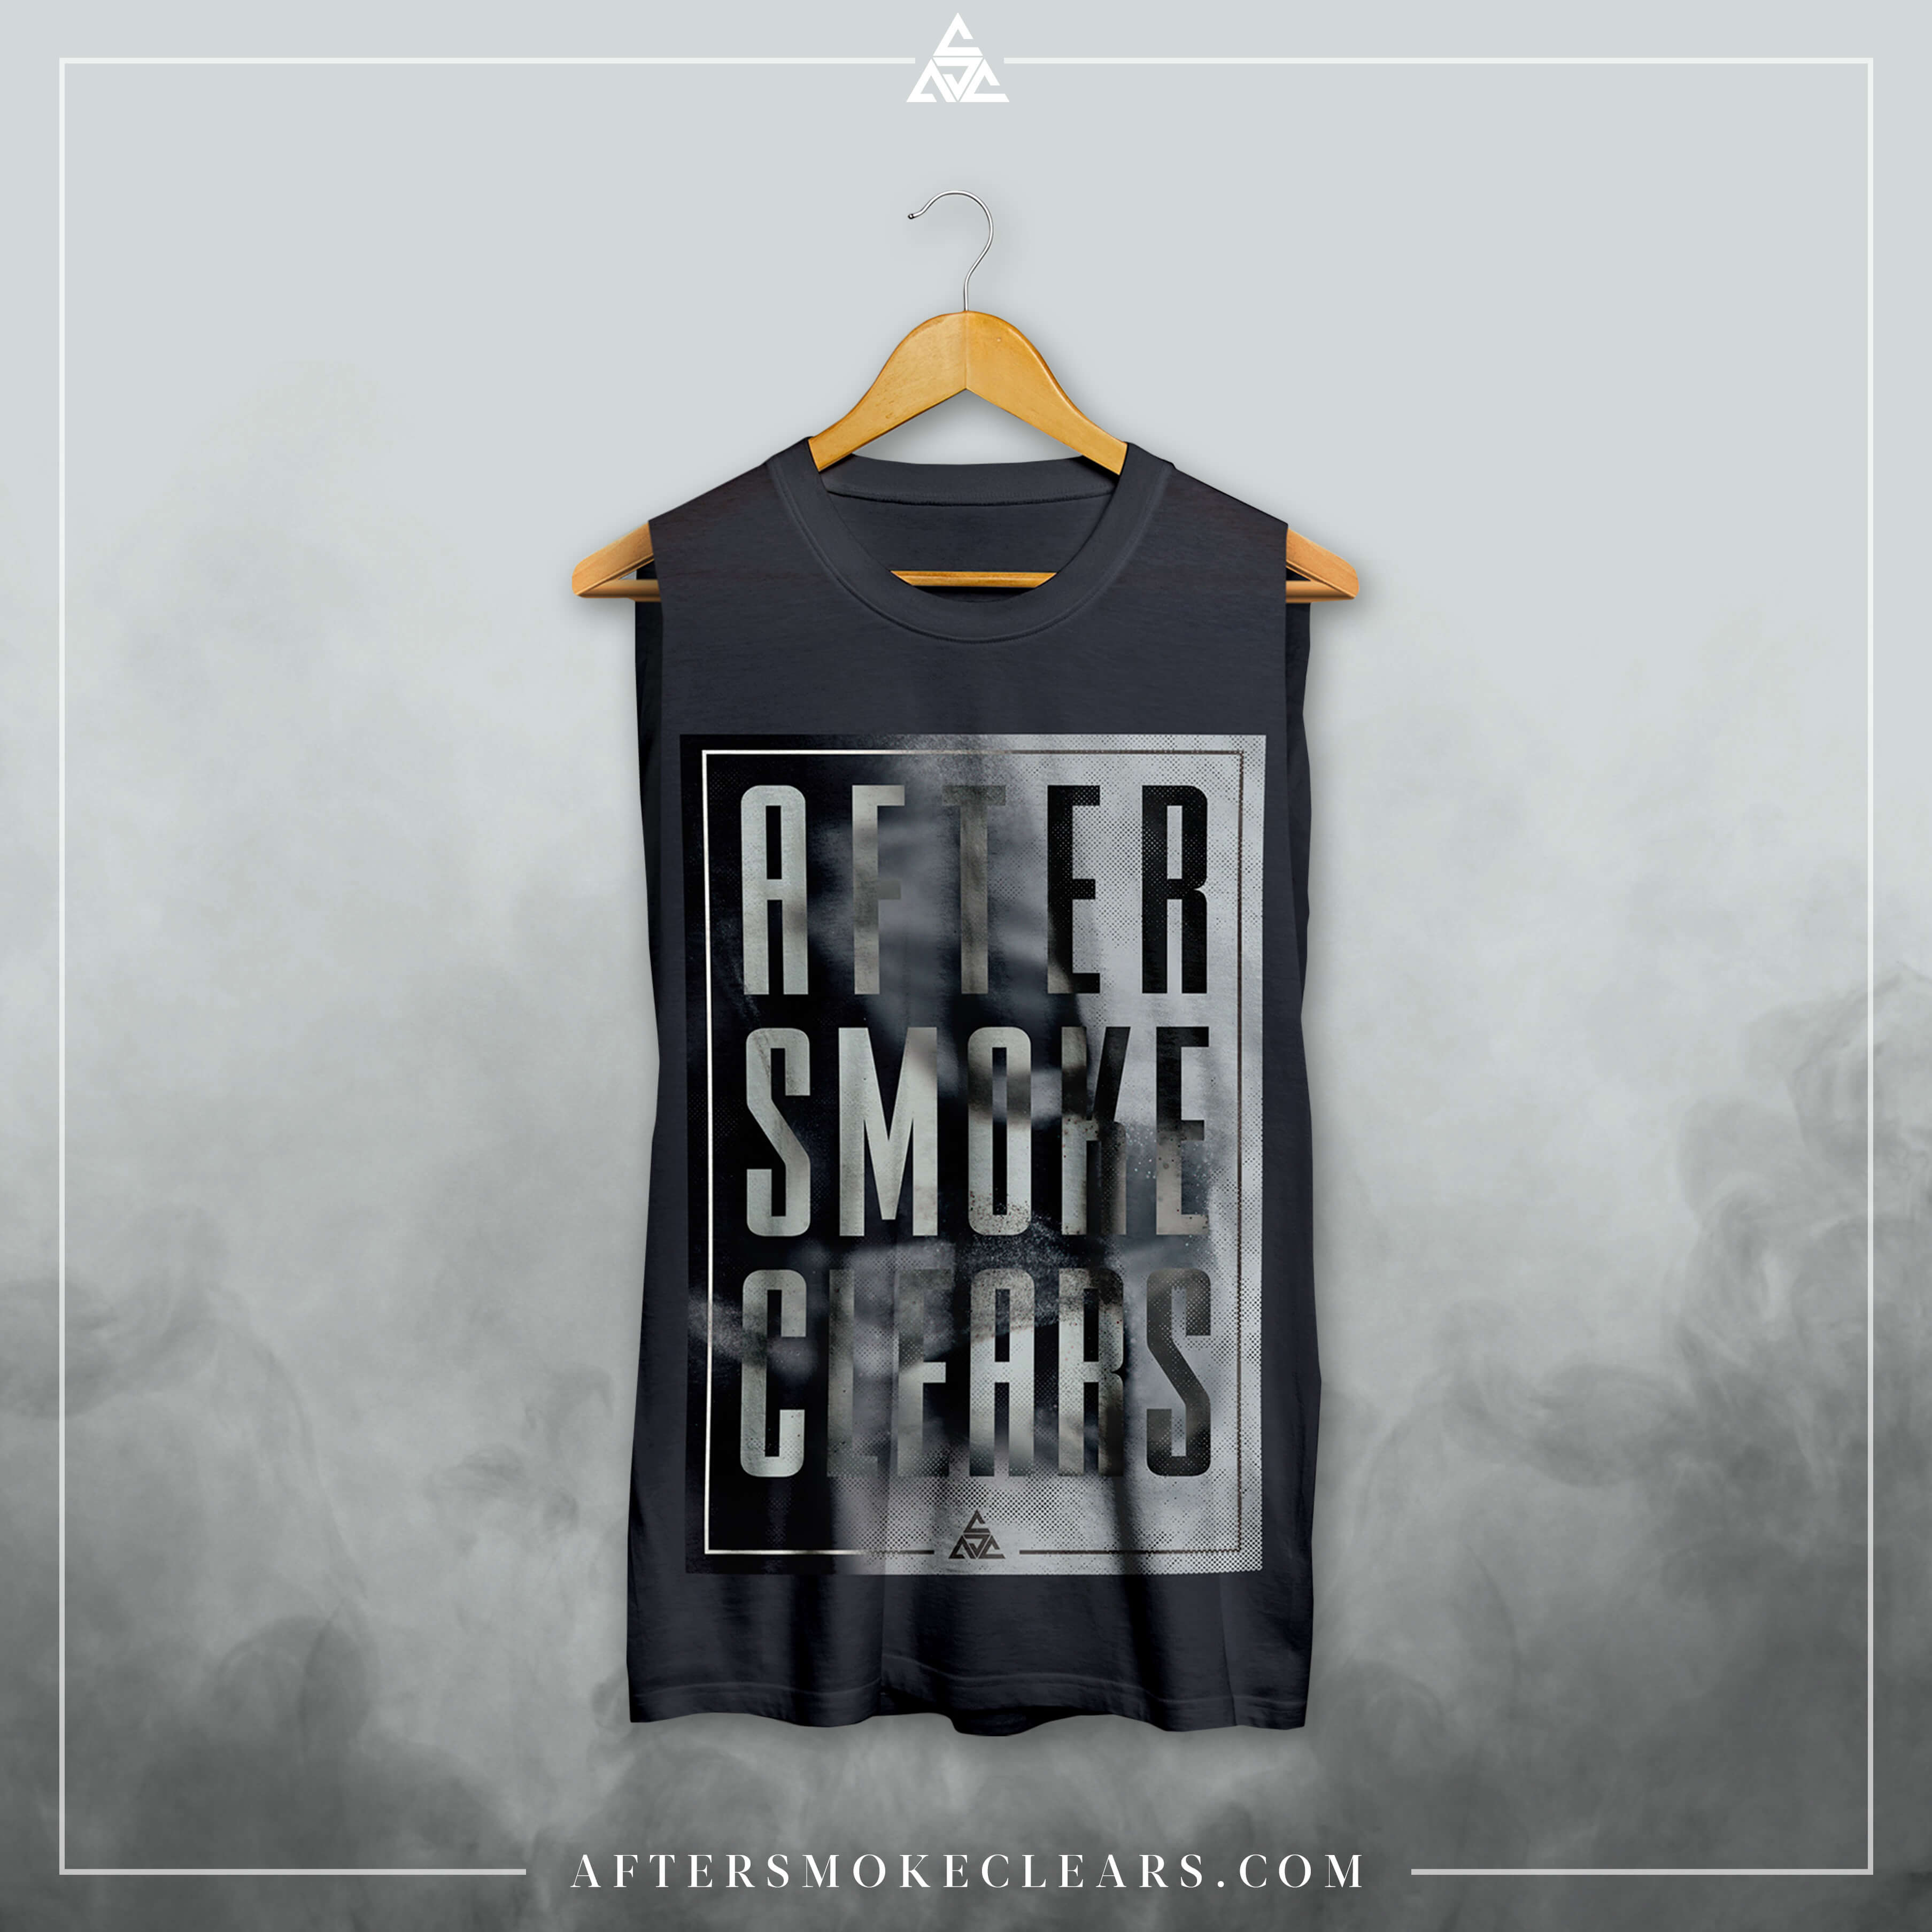 After Smoke Clears - Black Tank